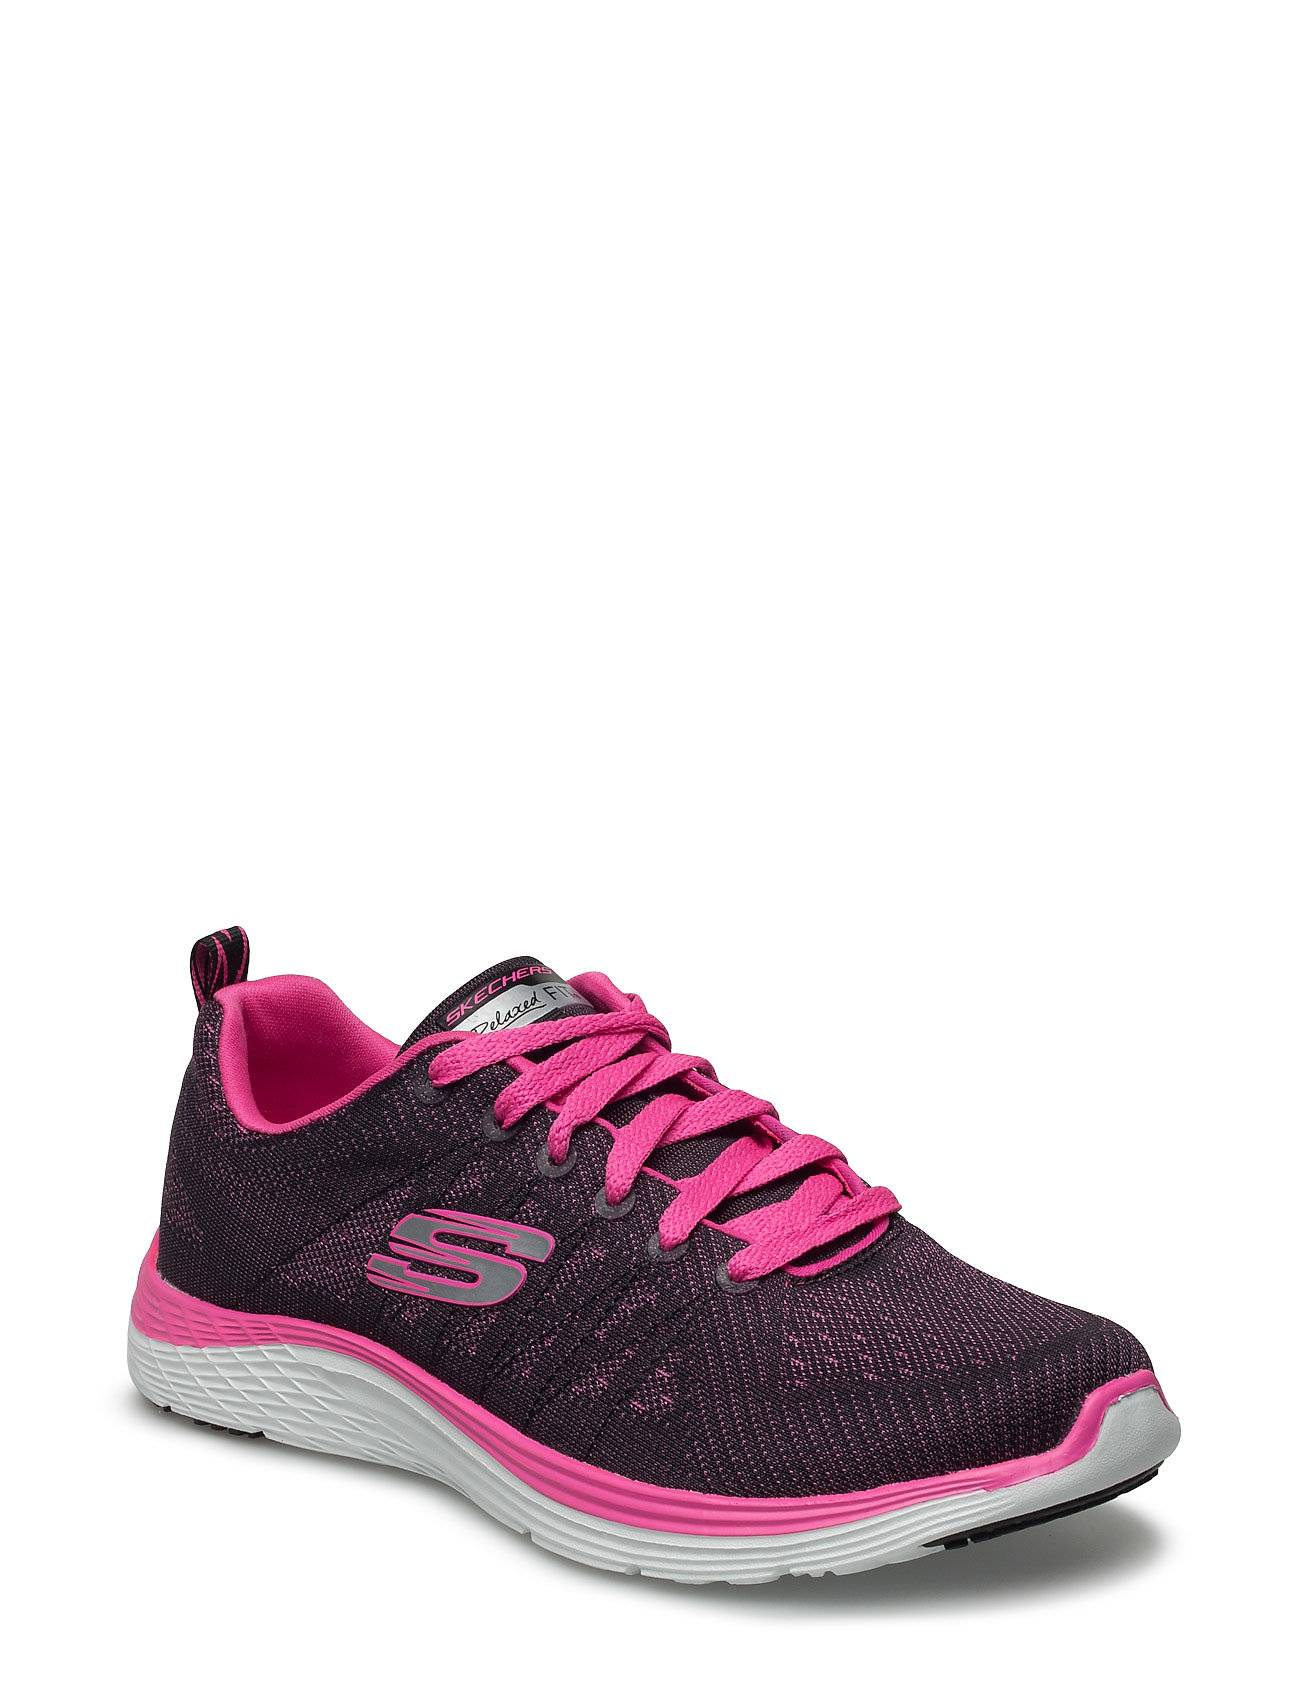 Skechers Womans Valeris